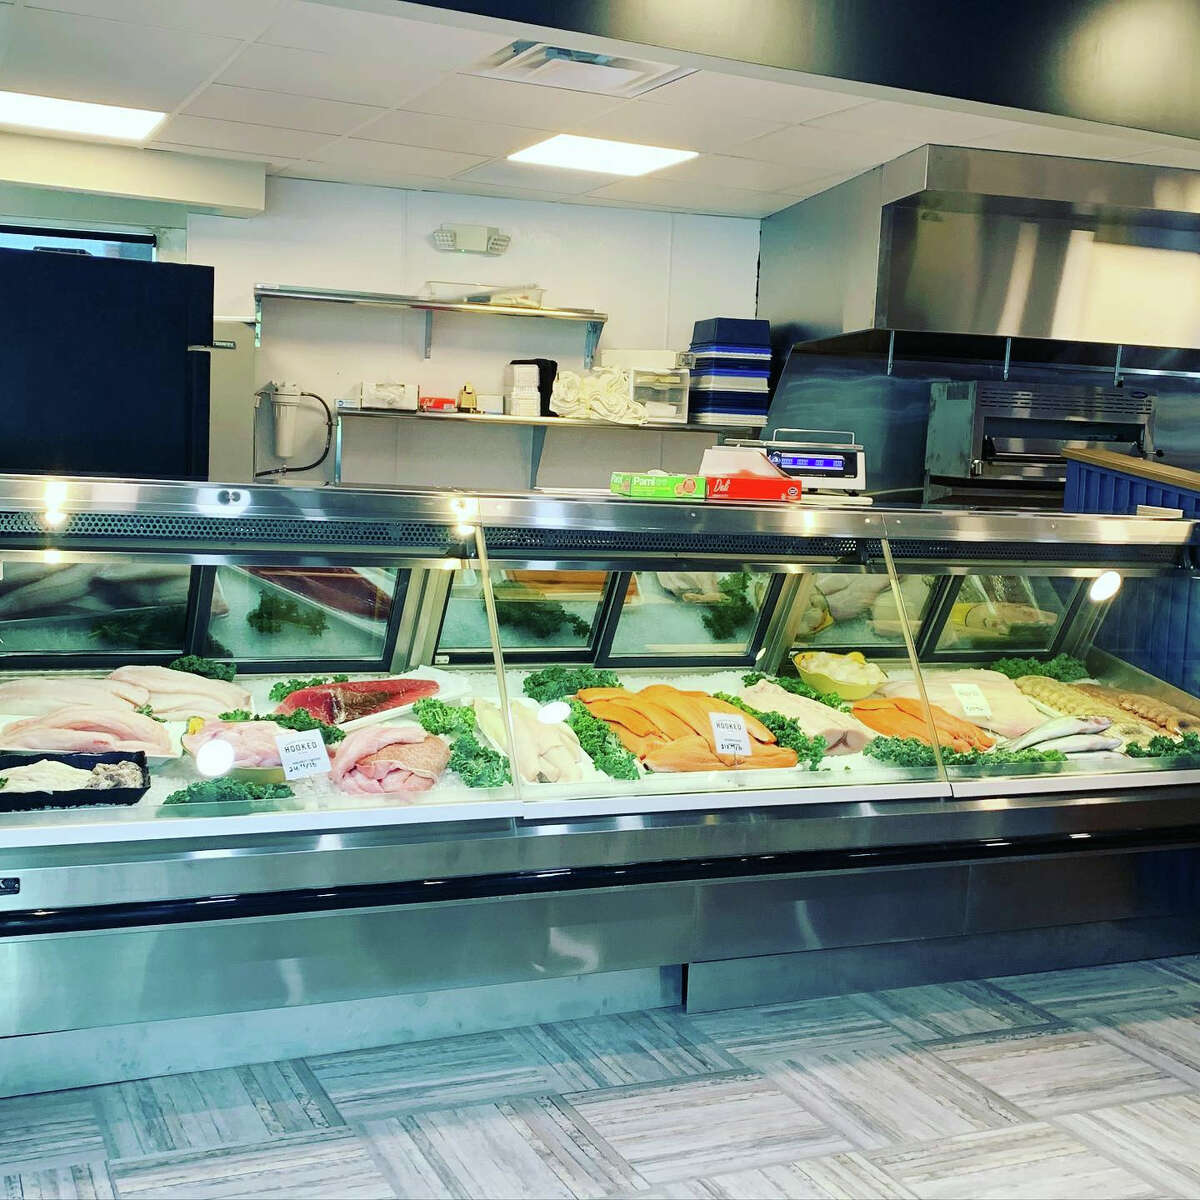 Hooked Market & Kitchen in Latham is now open for retail sales and lunch service. The address is 1177 Troy-Schenectady Road, the former Ario's Pizza, about a third of a mile from the original location in Galleria 7.